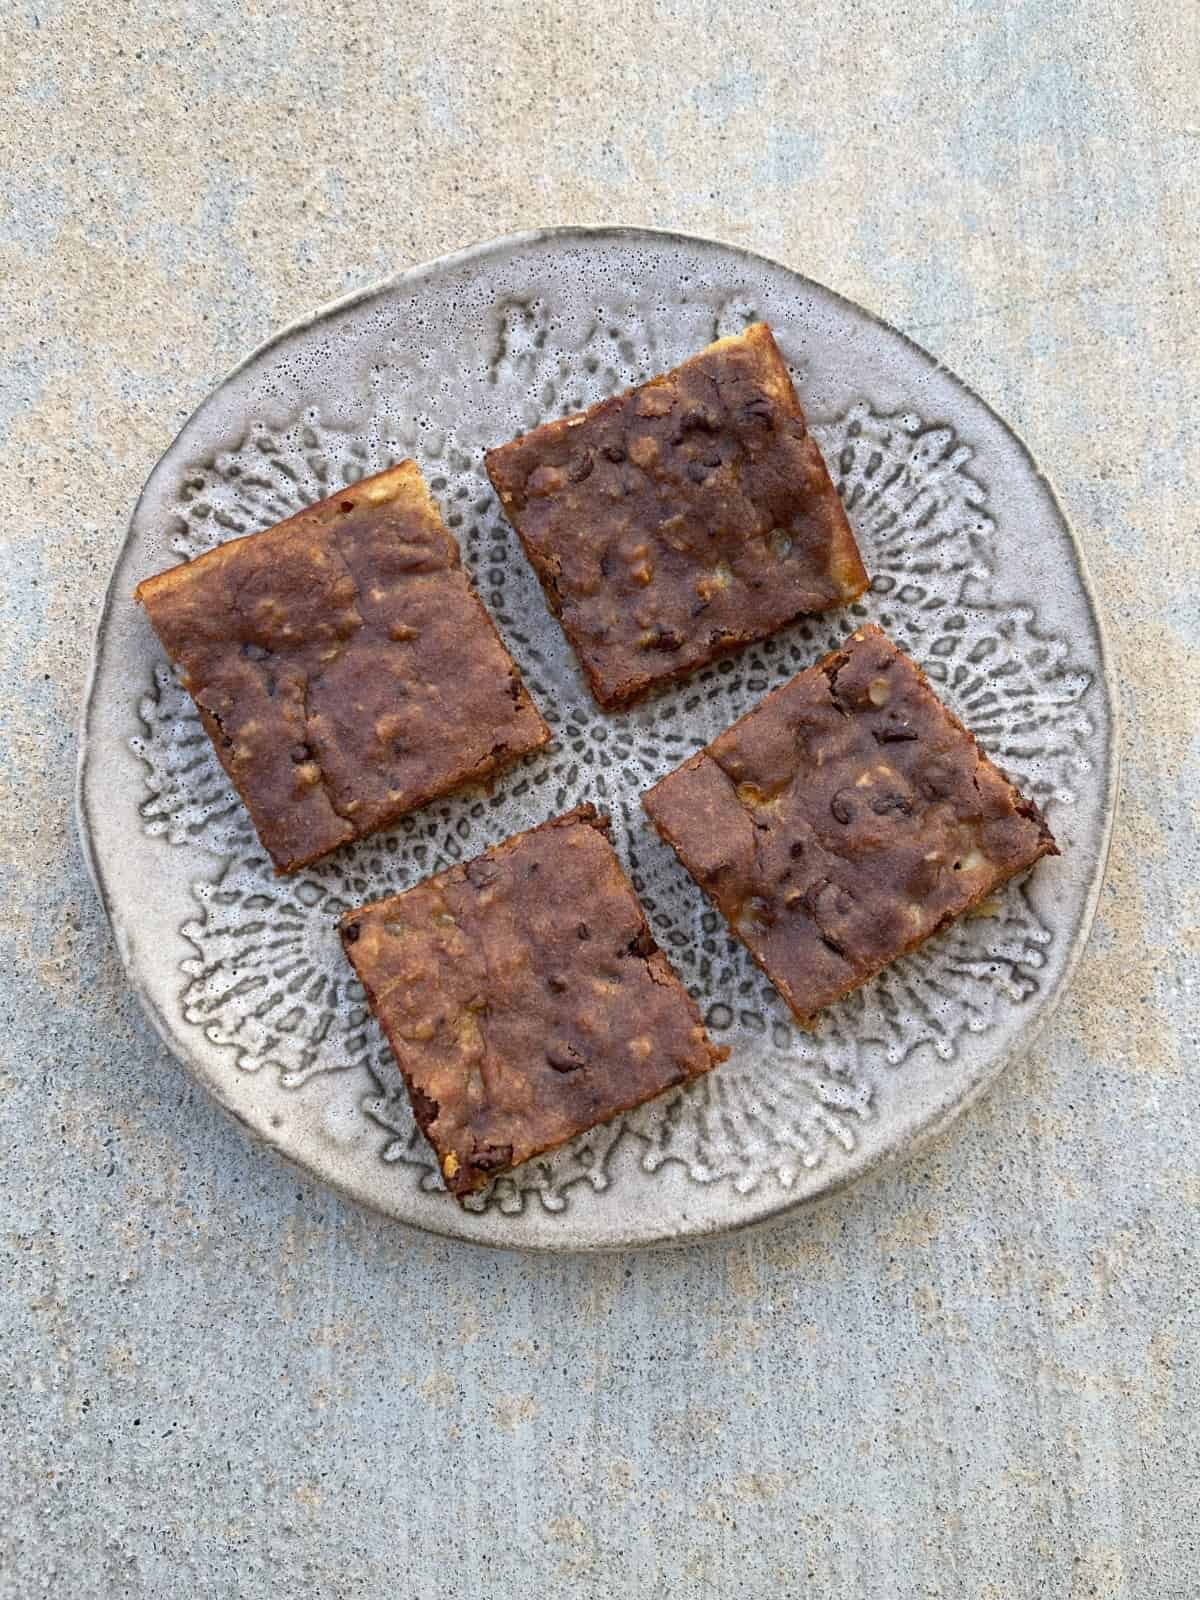 Banana Bread Brownies on ceramic plate from above.